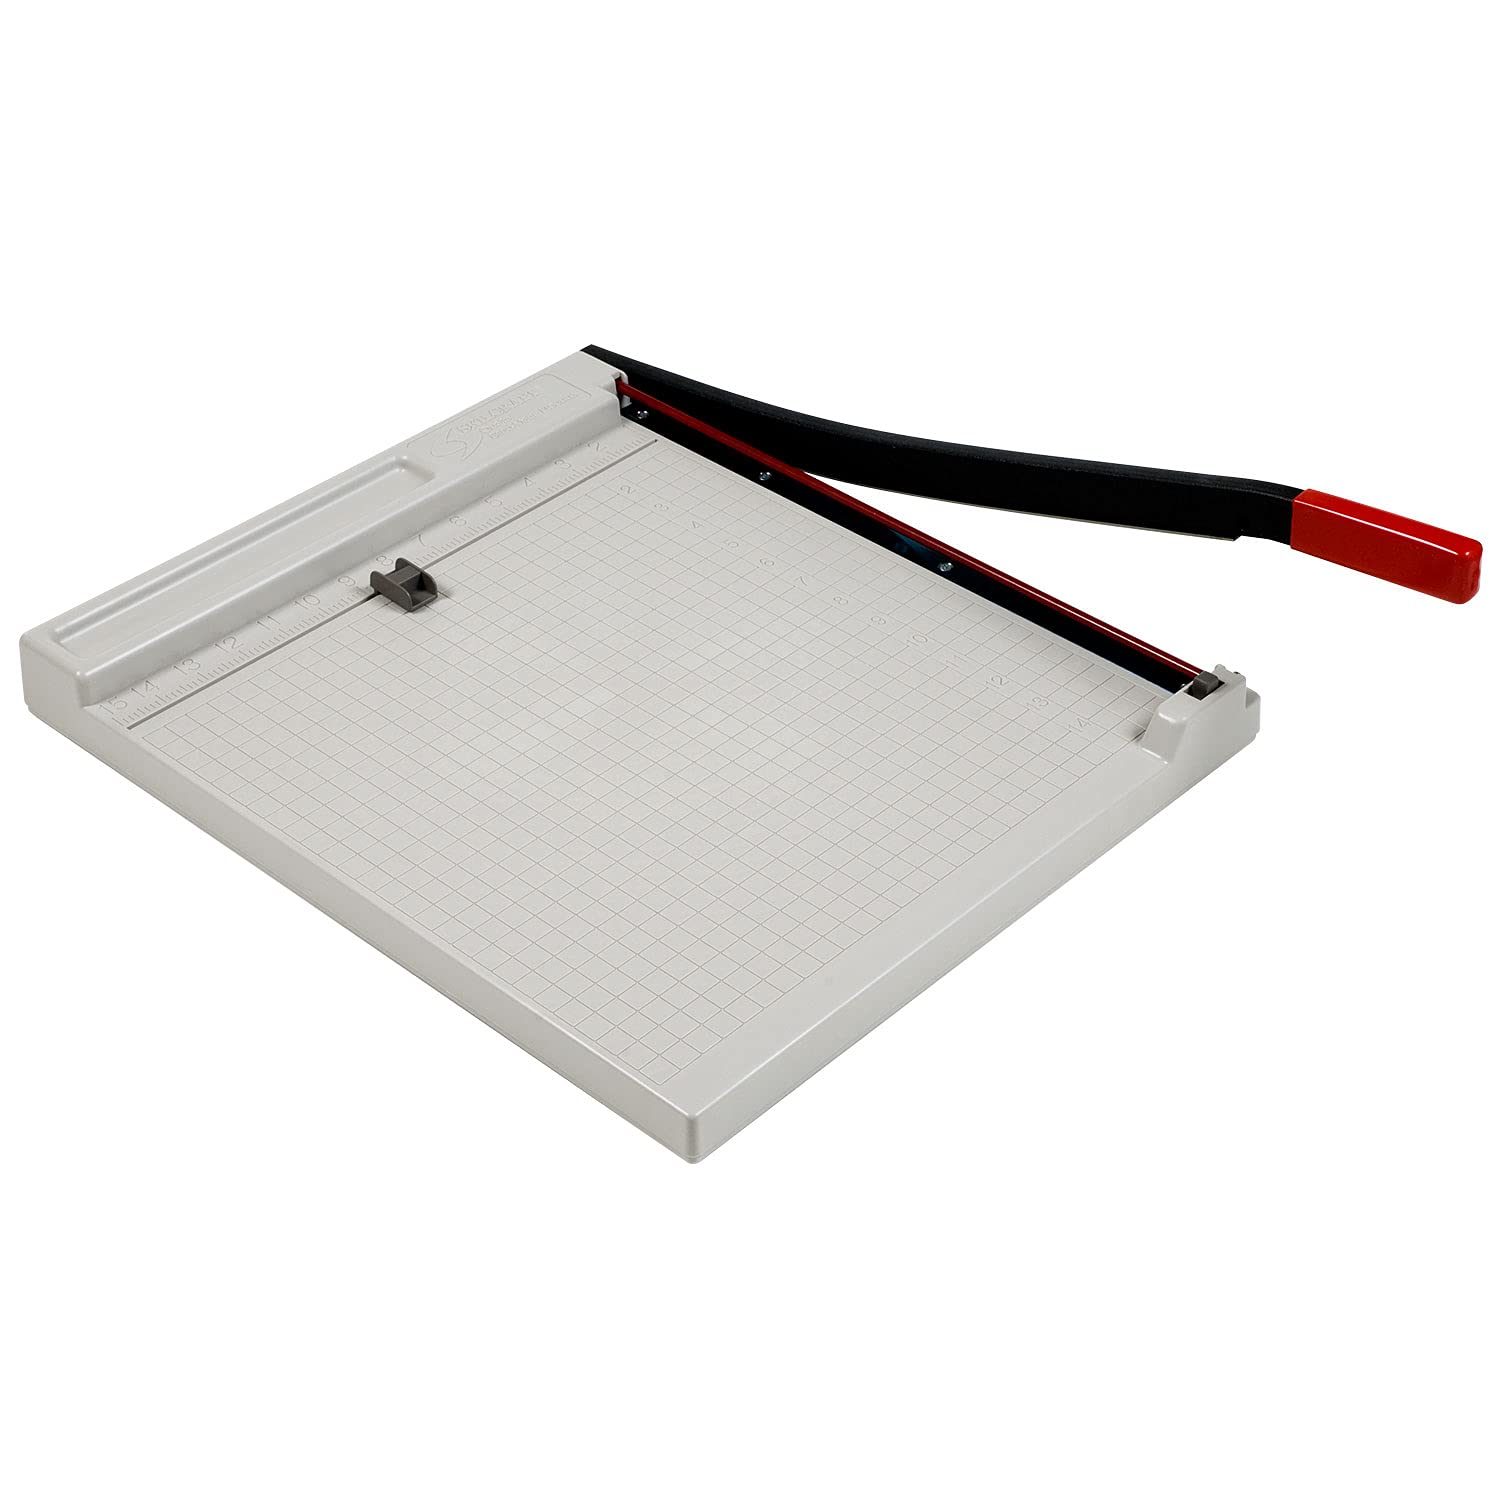 AbilityOne - Paper Trimmer 7520-00-634-4675 x Excellence 15